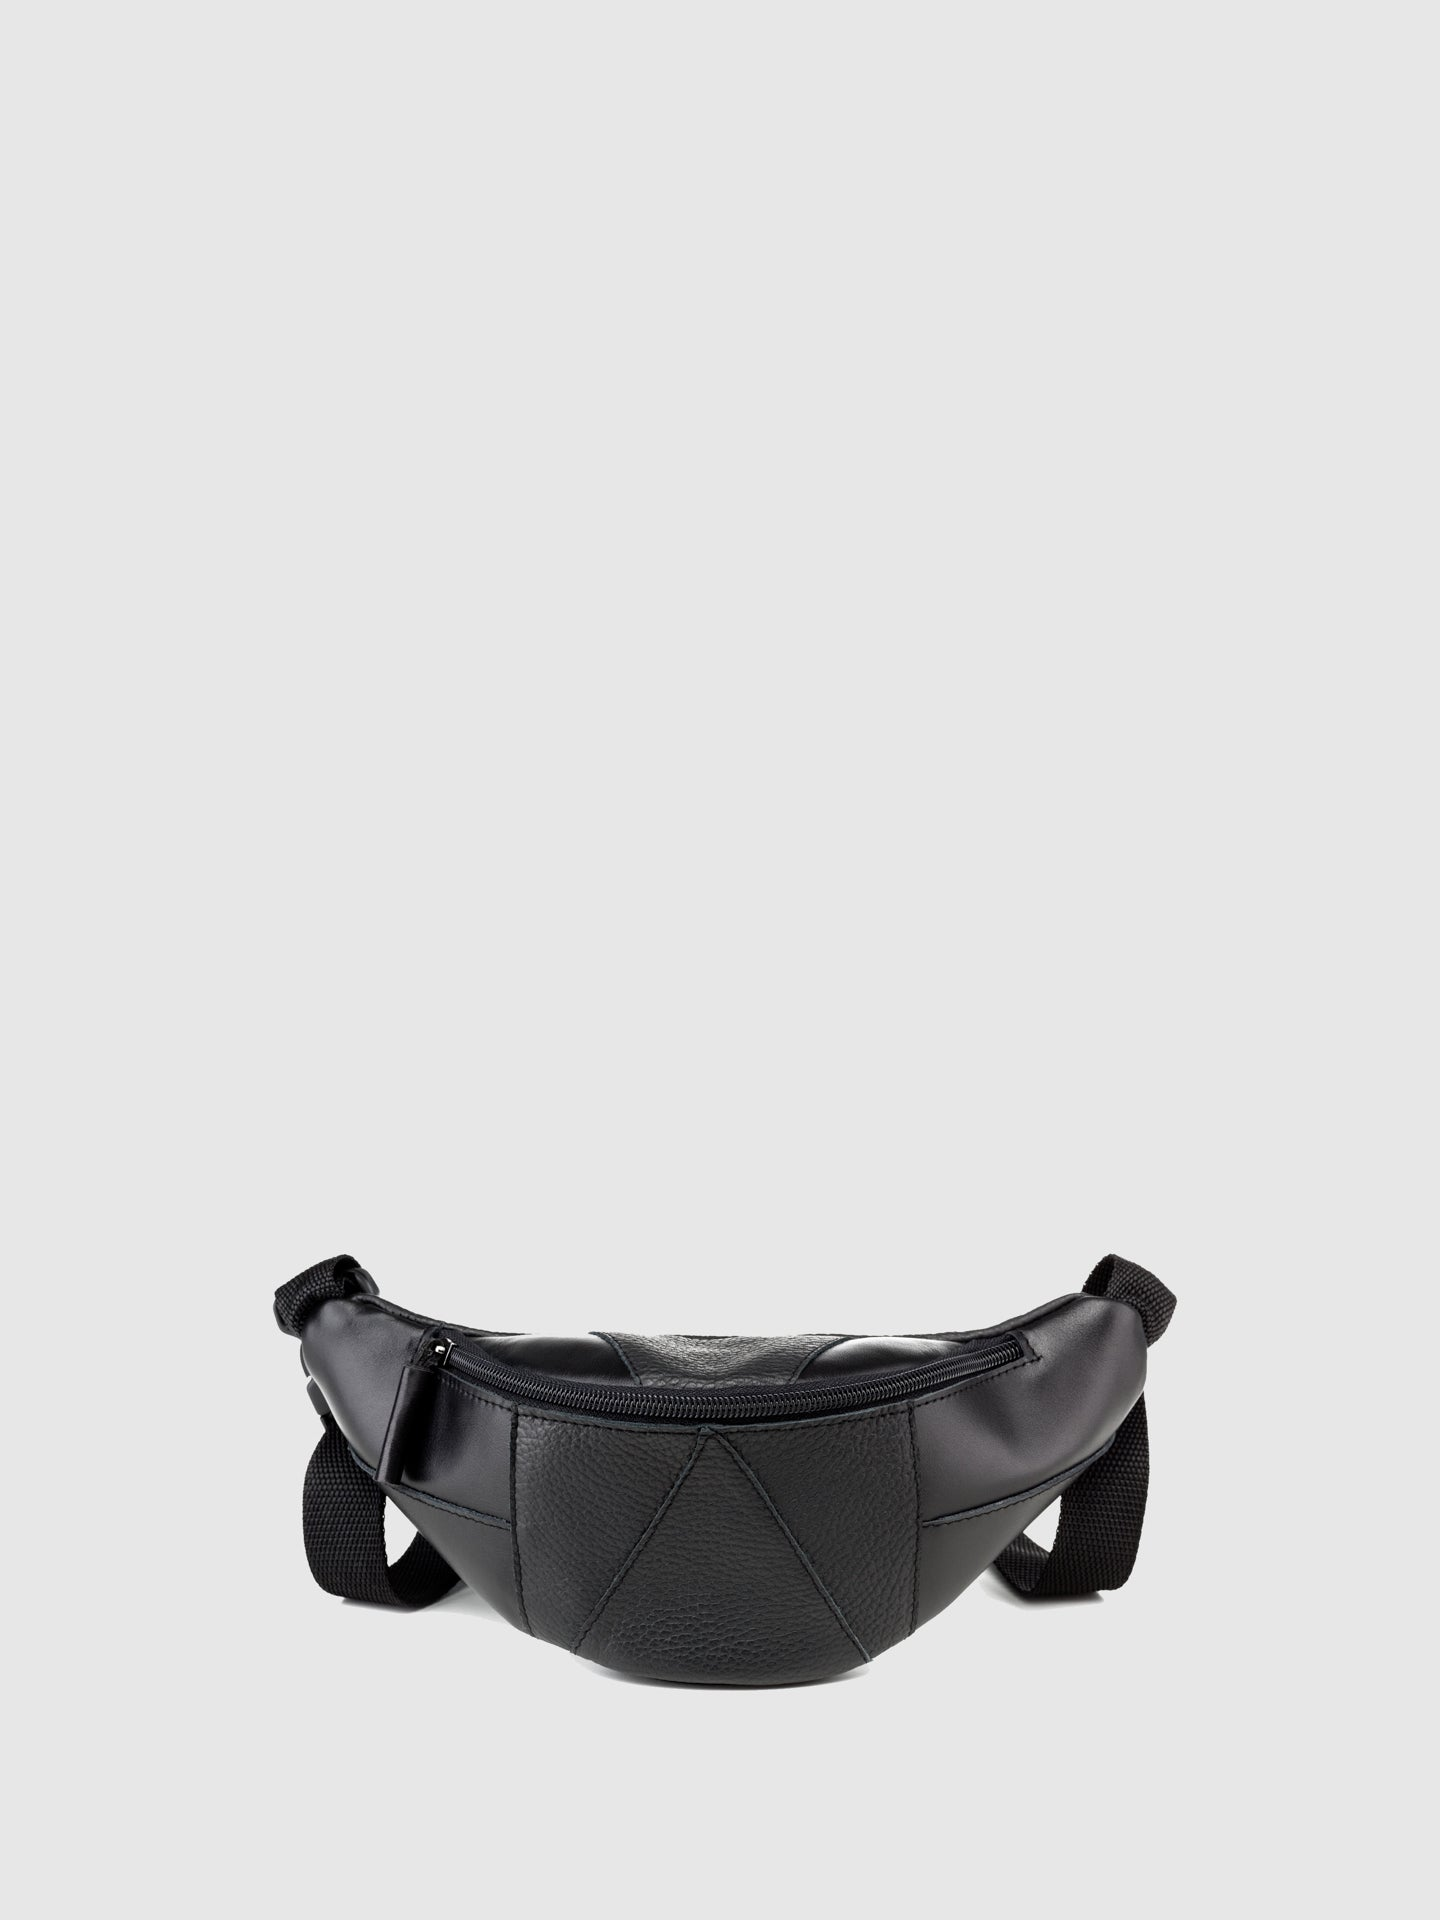 Maria Maleta Black Leather Bumbag